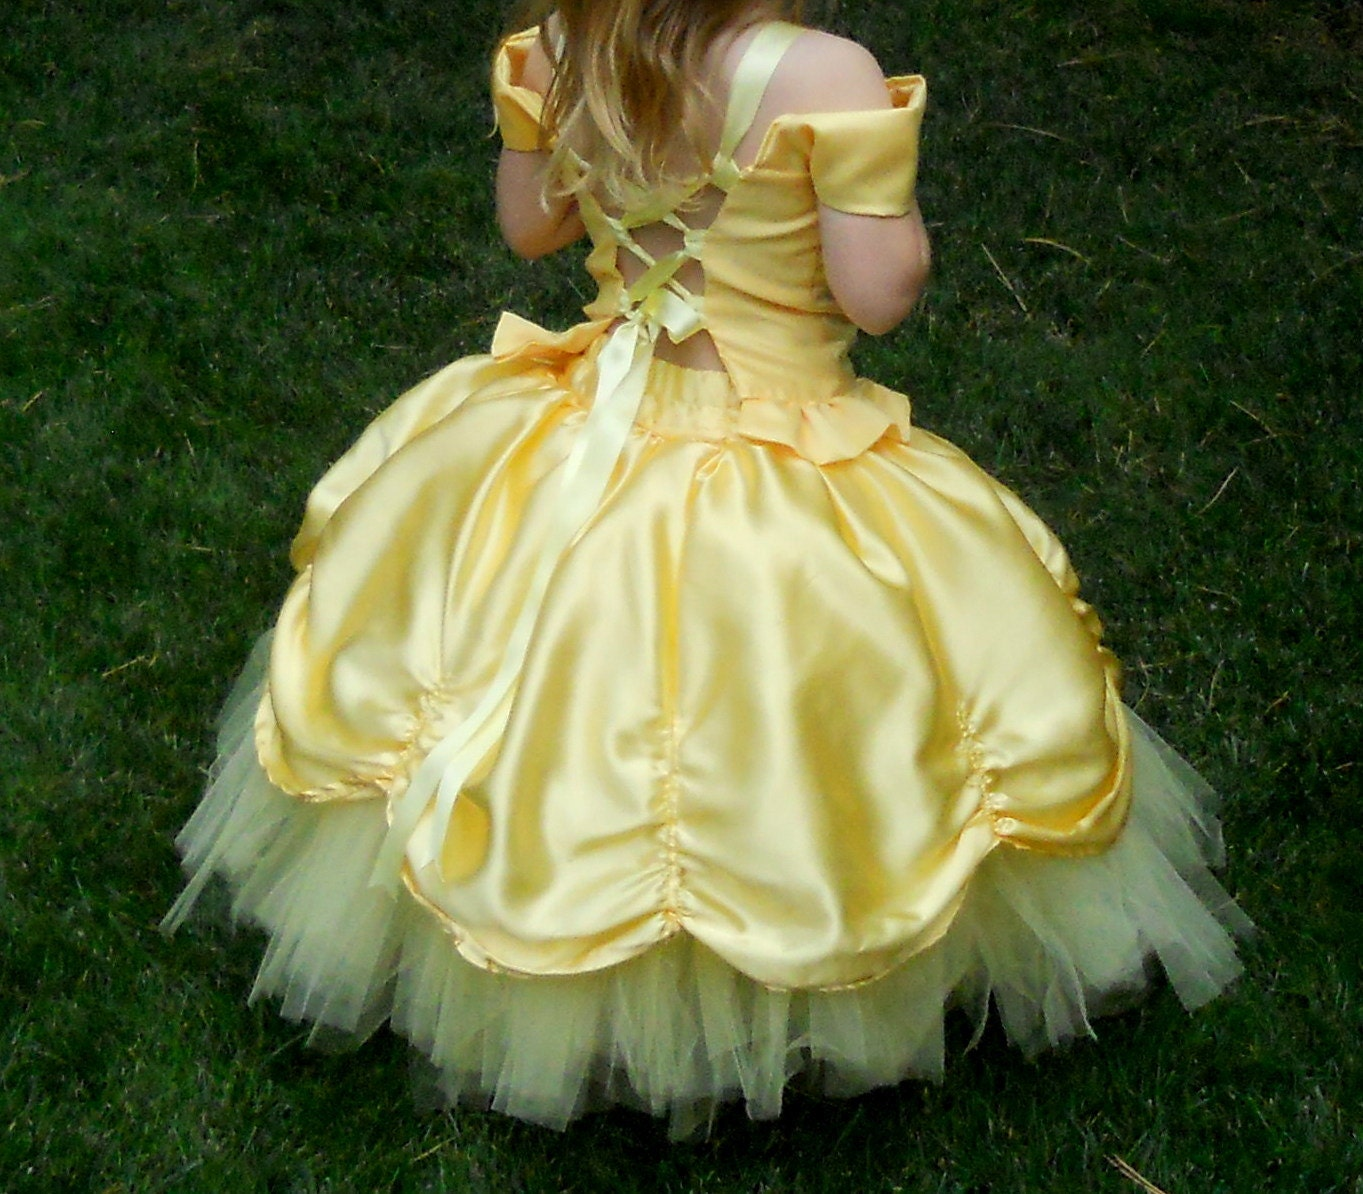 Tutu Flower Girl Toddler Fancy Princess Dress 3T 4T 5T By DressNup